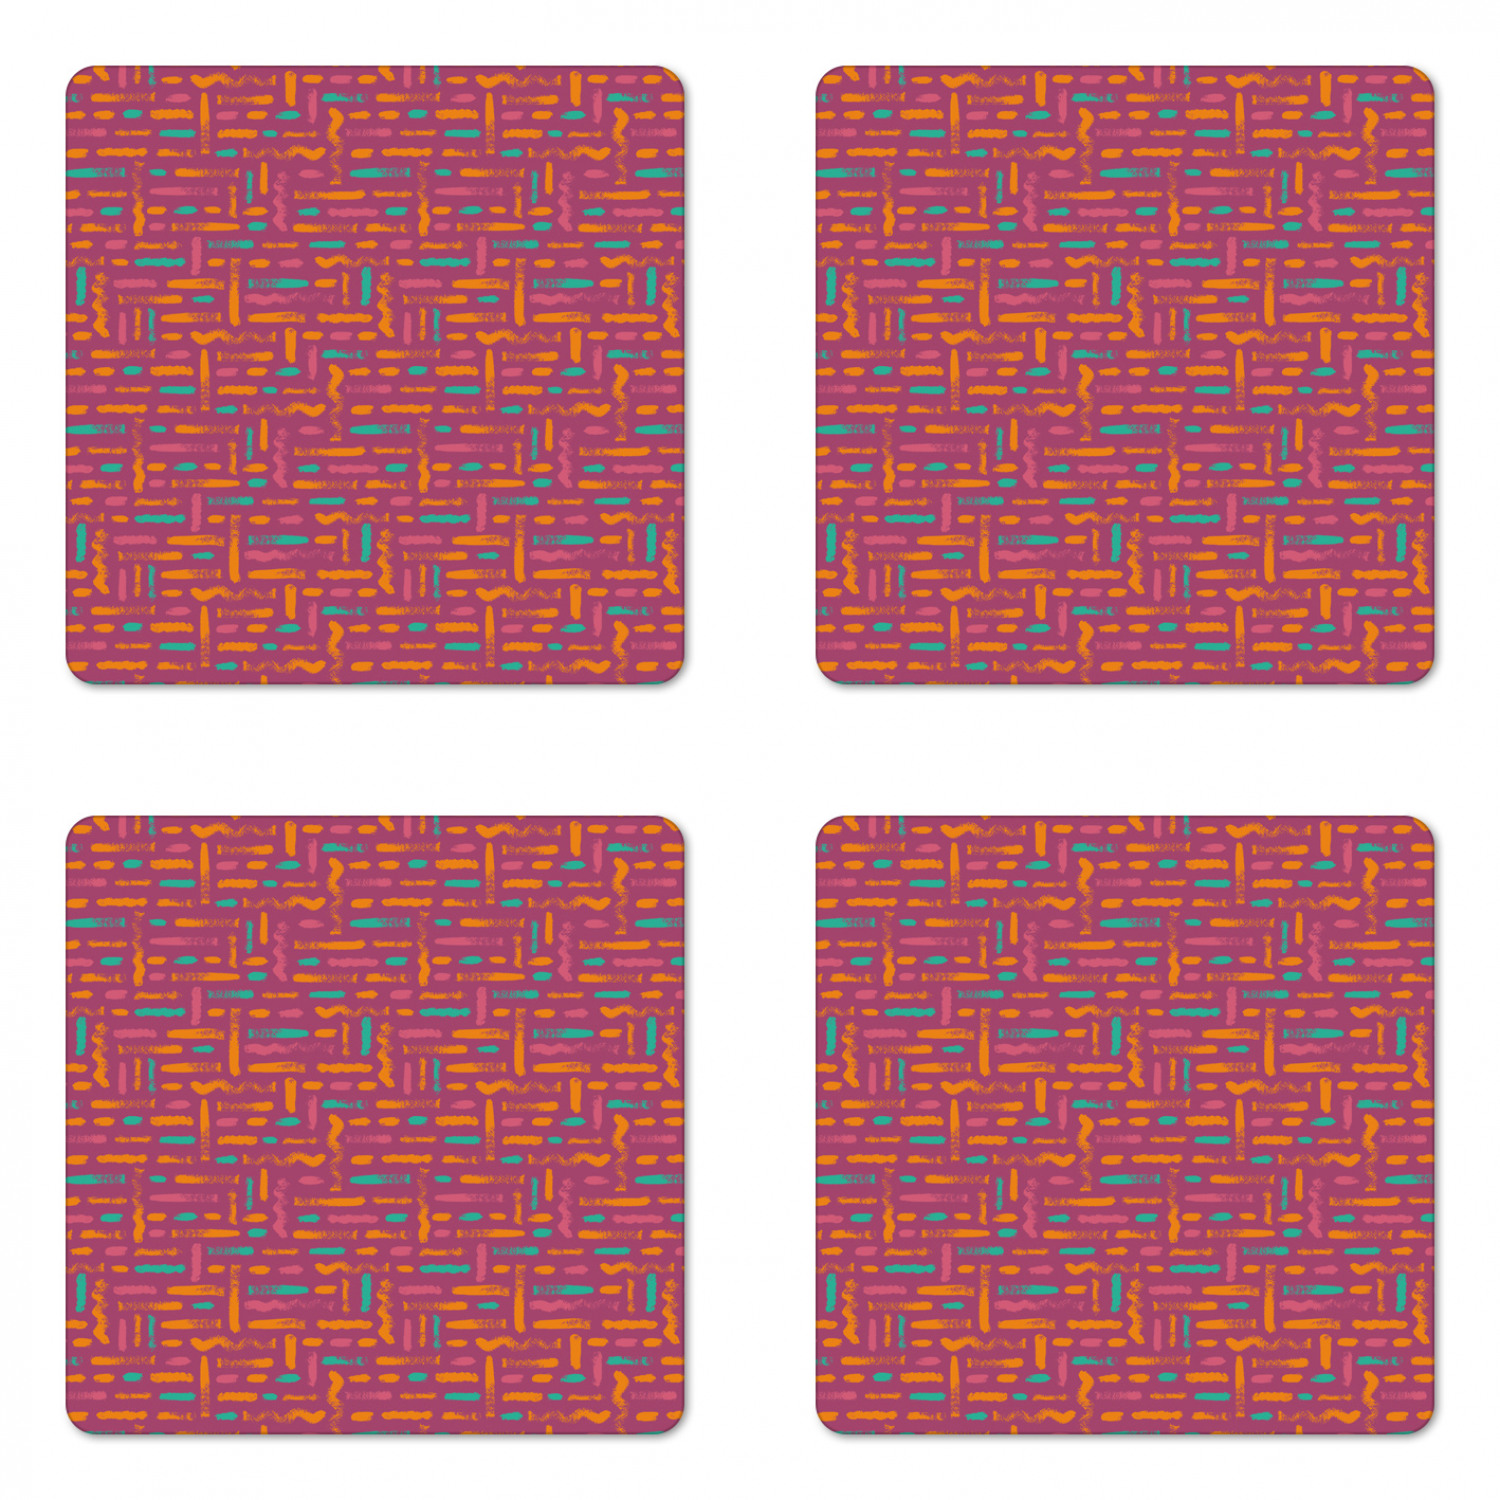 Abstract Coaster Set Of 4 Image Of Horizontal Dashed